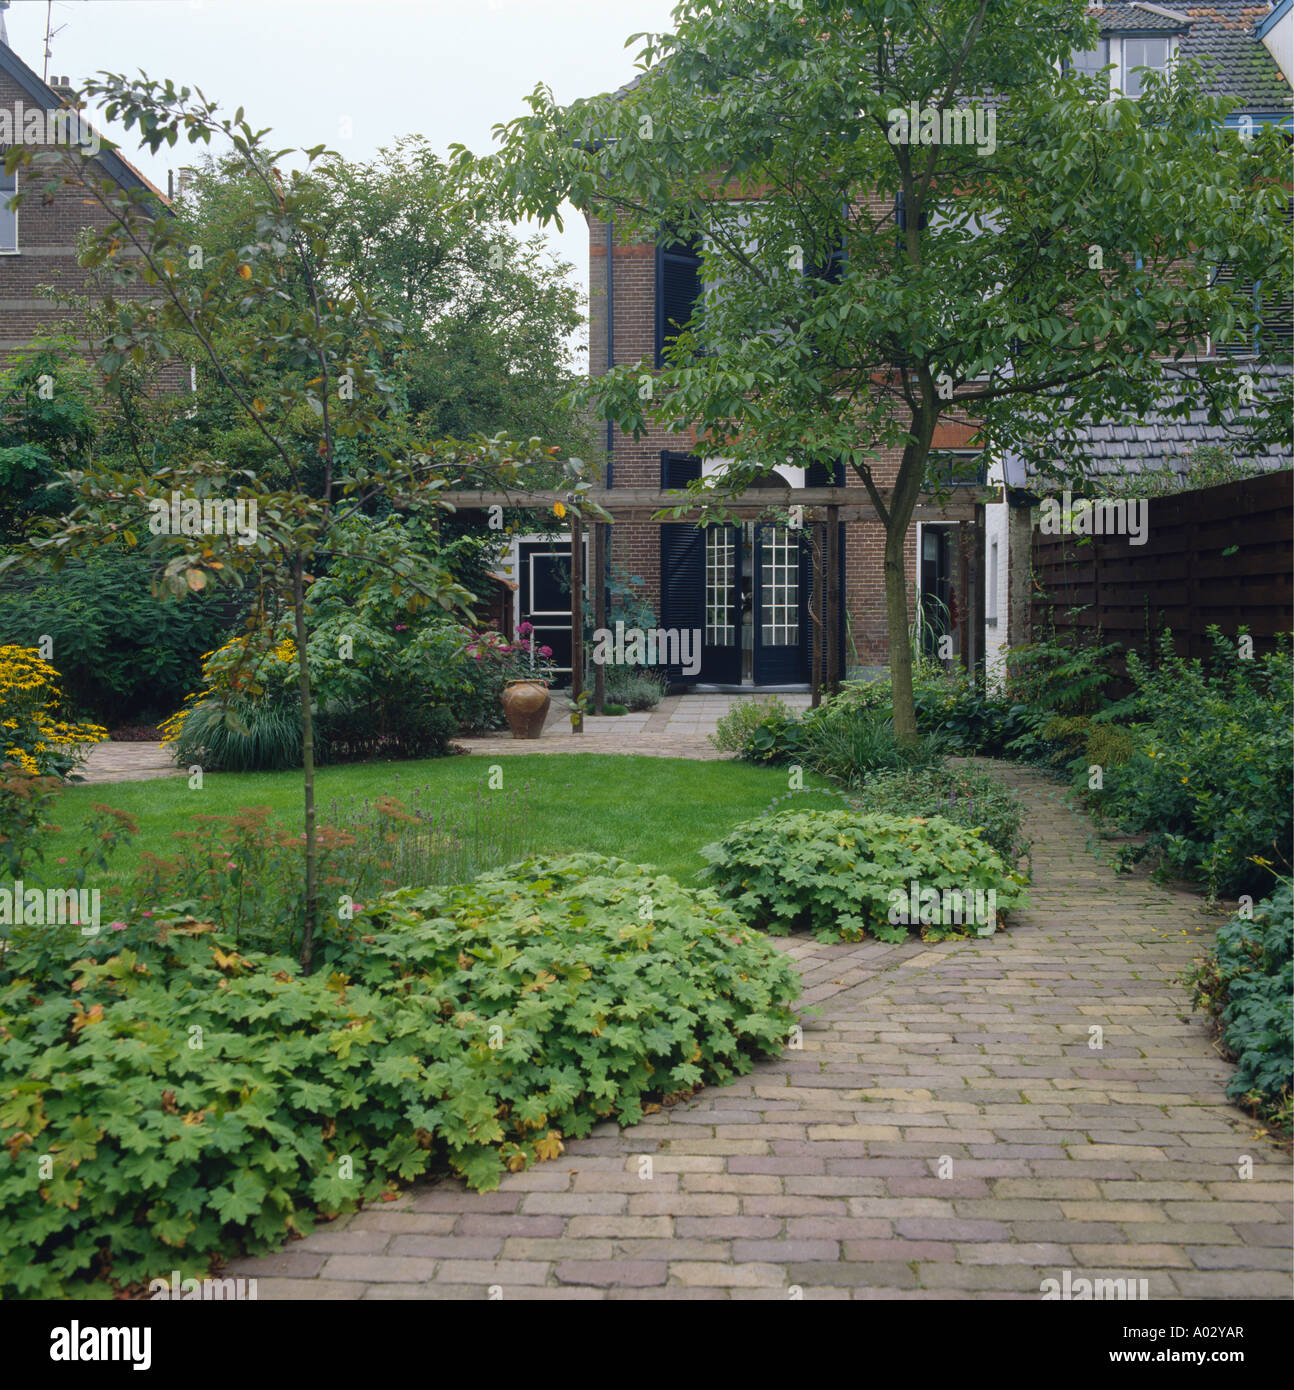 Small Trees For Borders: Paved Path Beside Green Borders With Small Trees Beside